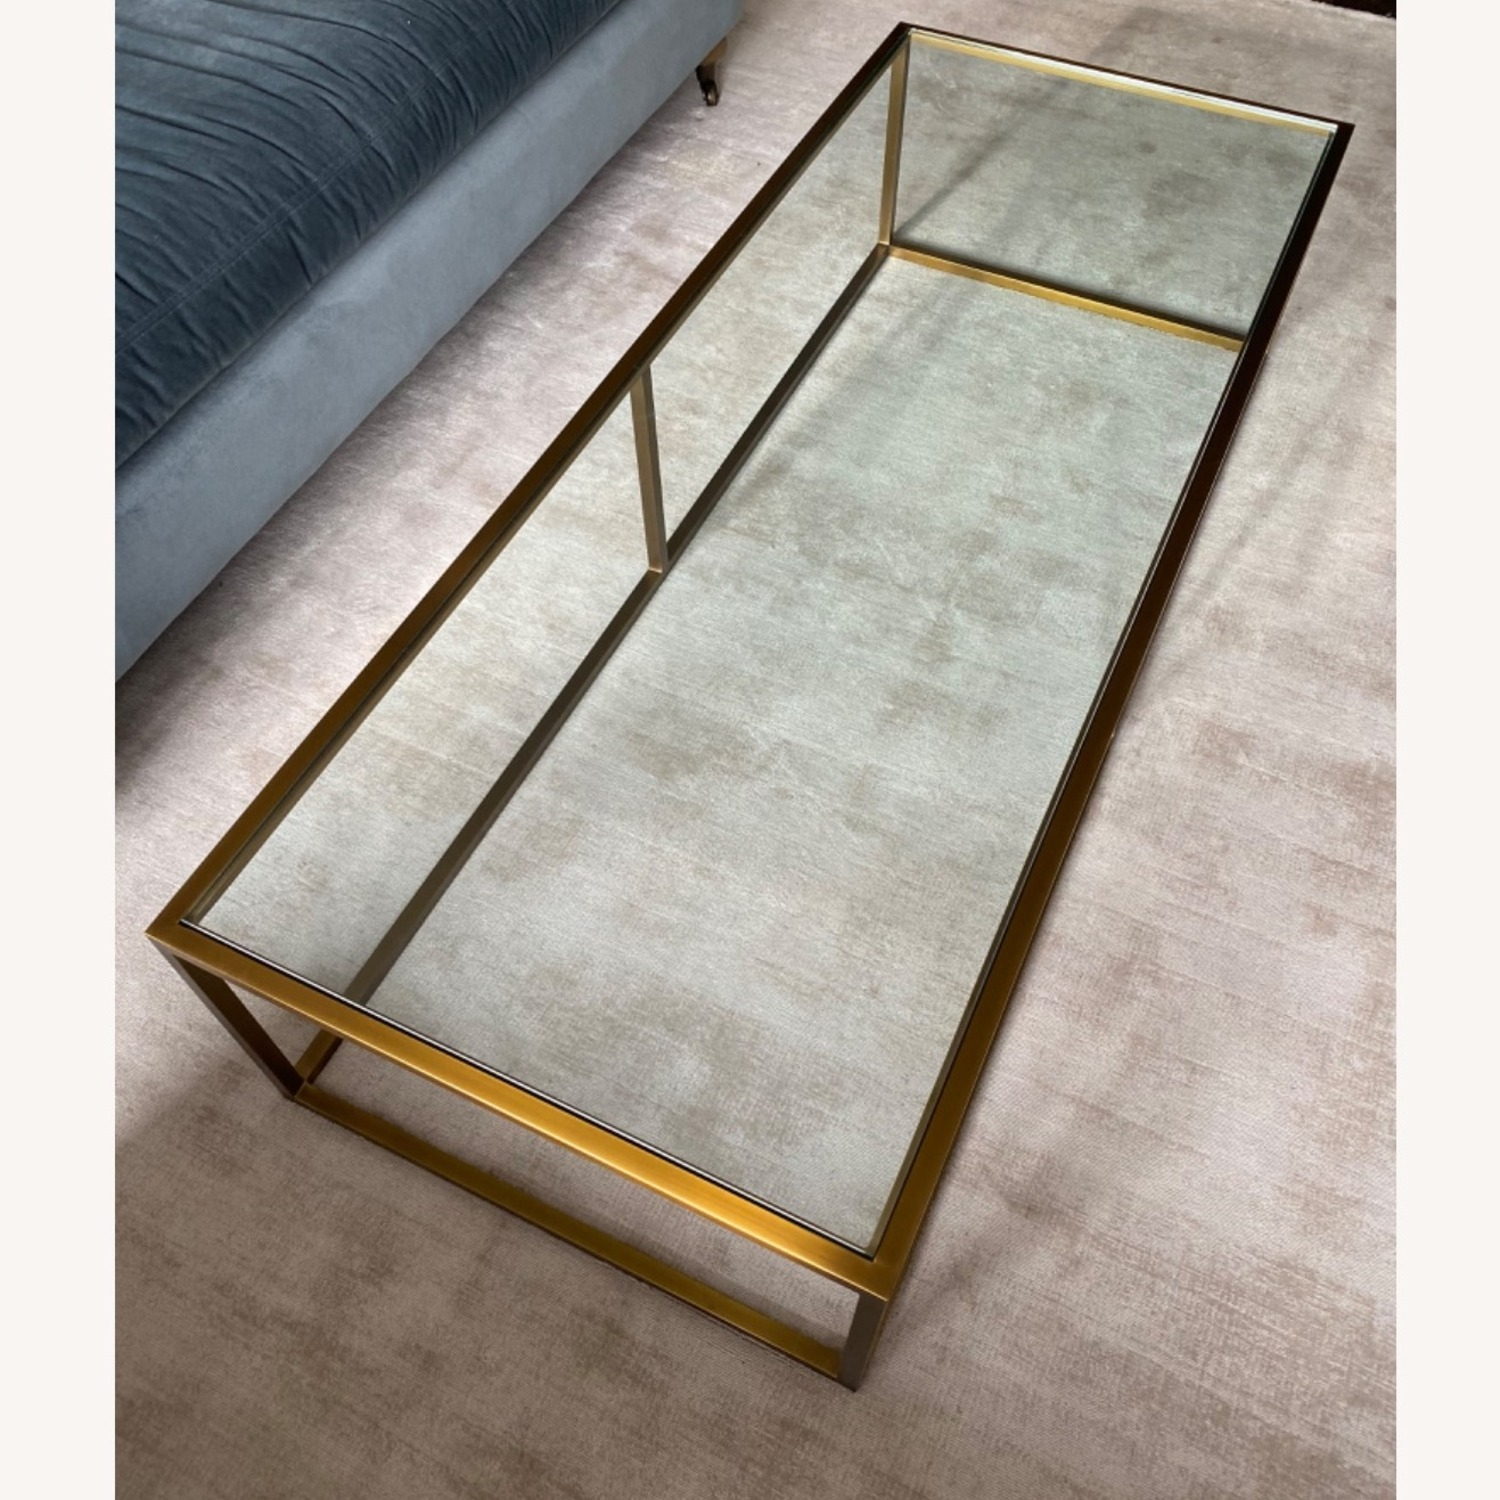 Restoration Hardware Burnished Brass Coffee Table - image-4